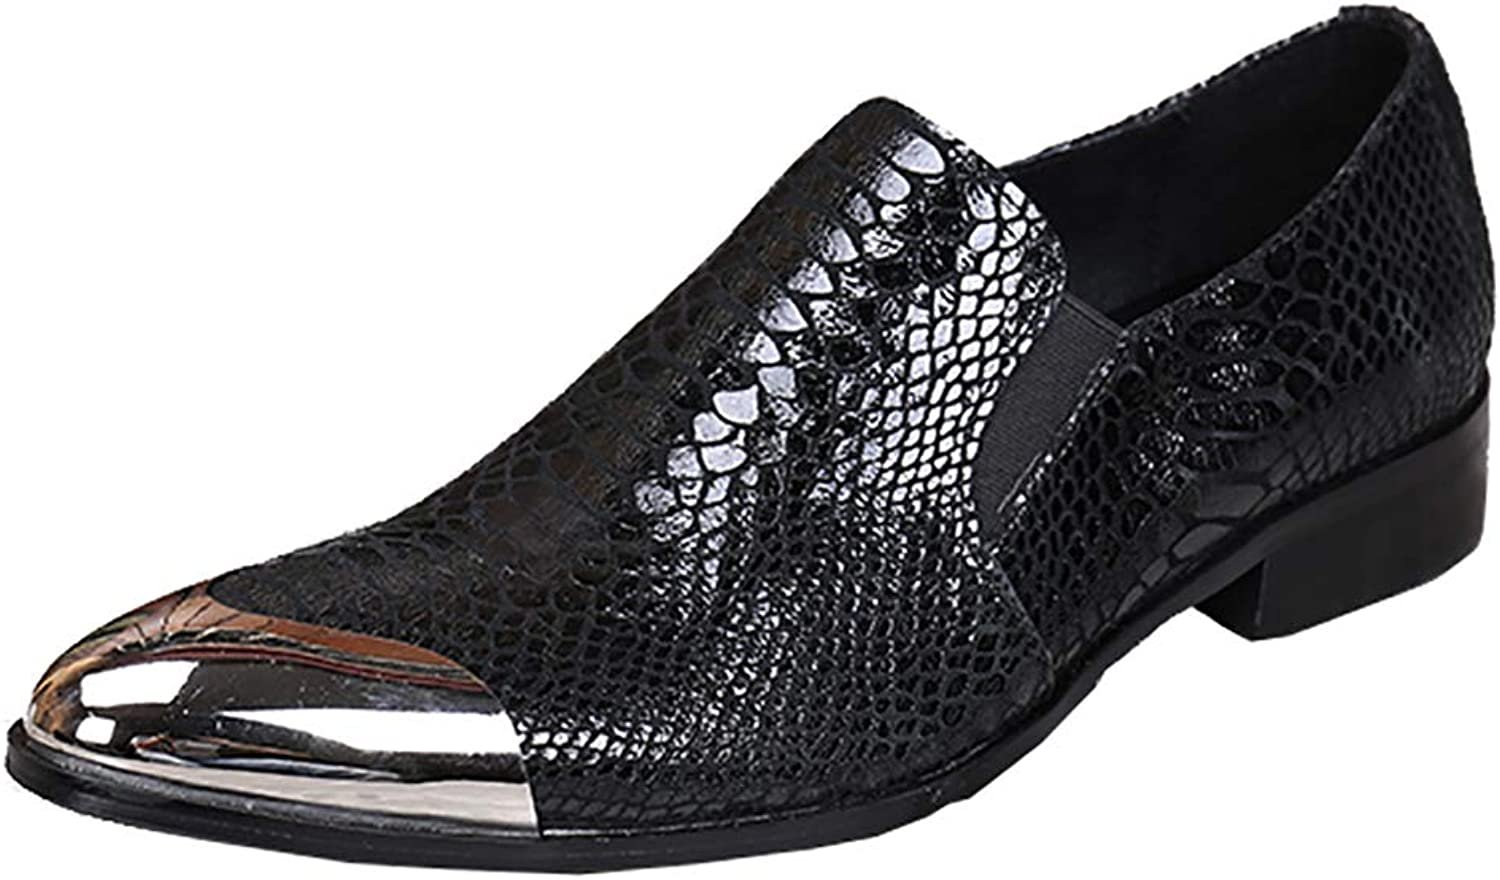 Men's Leather shoes Business Casual shoes Pointed Crocodile Pattern Large Size